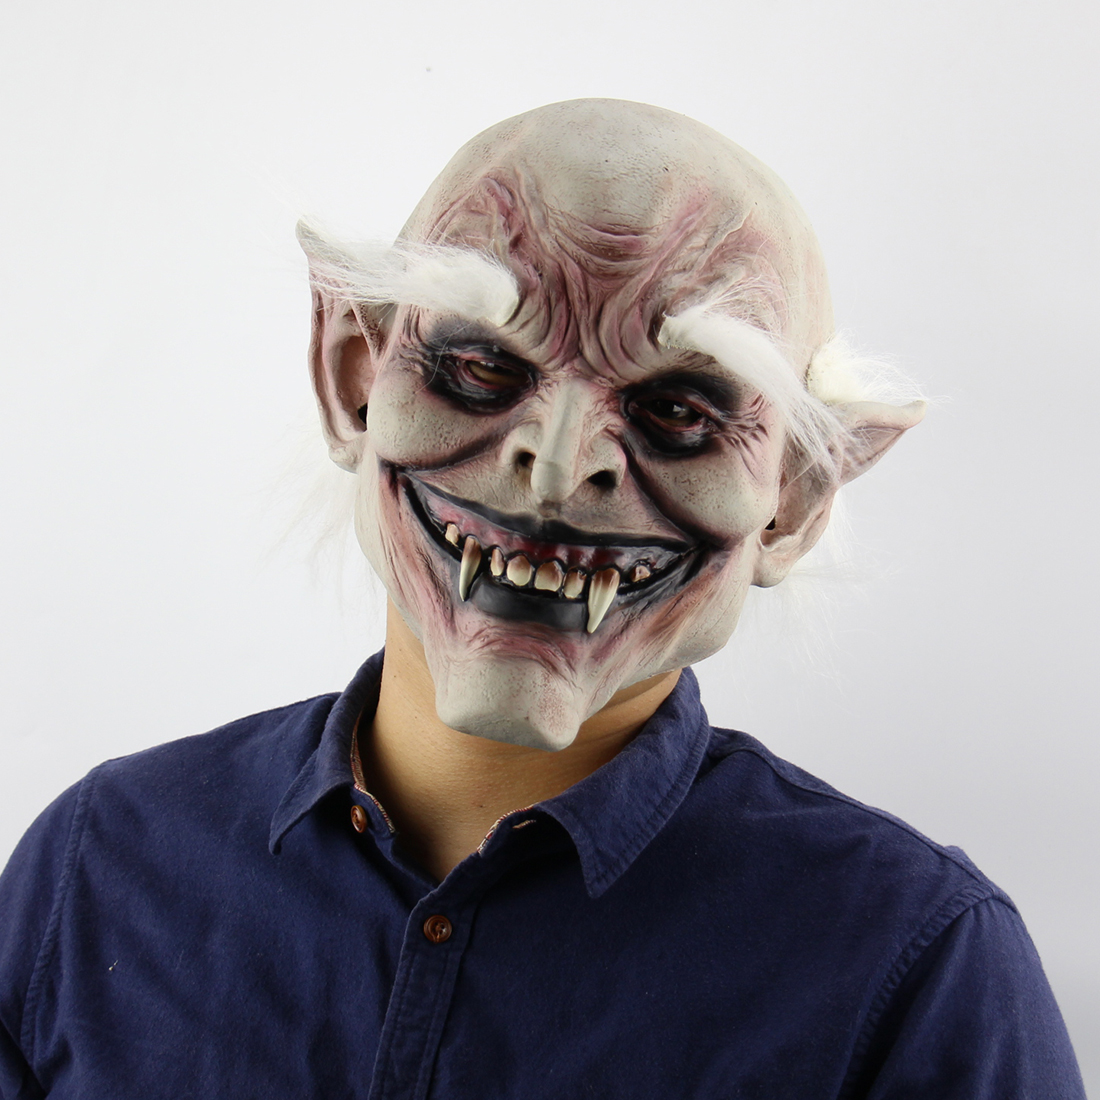 White-browed Old Demon Costume Mask Vampire Haunted House